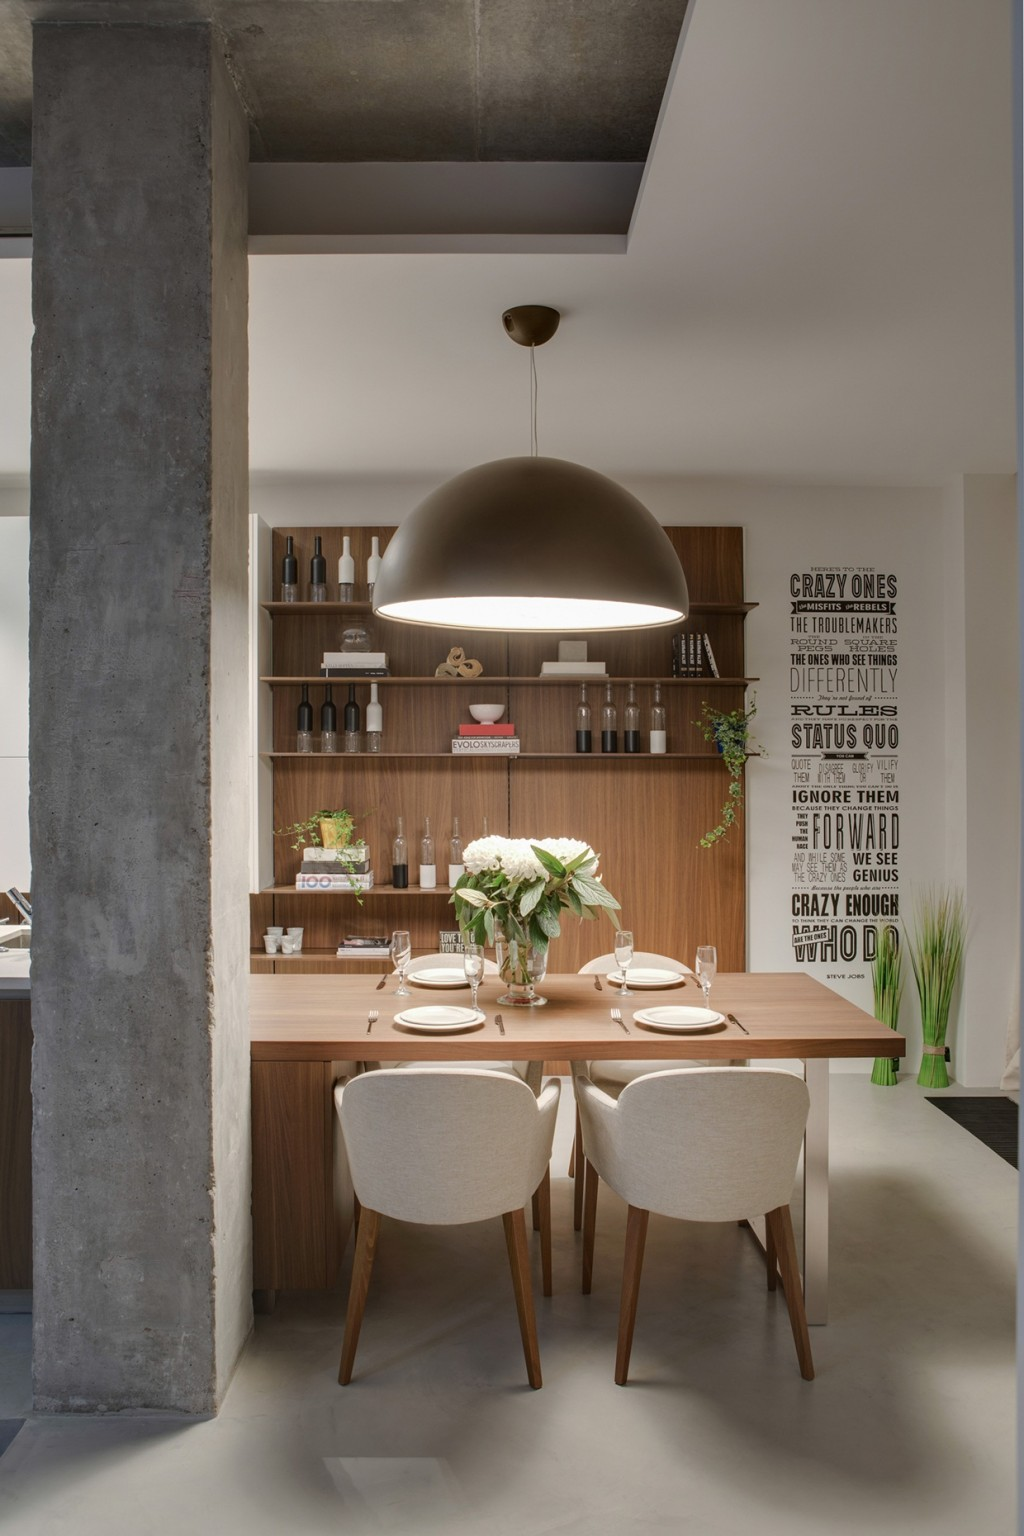 Modern Dining Room Furniture: Designing A Super Stylish Party Pad: The Oh!dessa Apartment